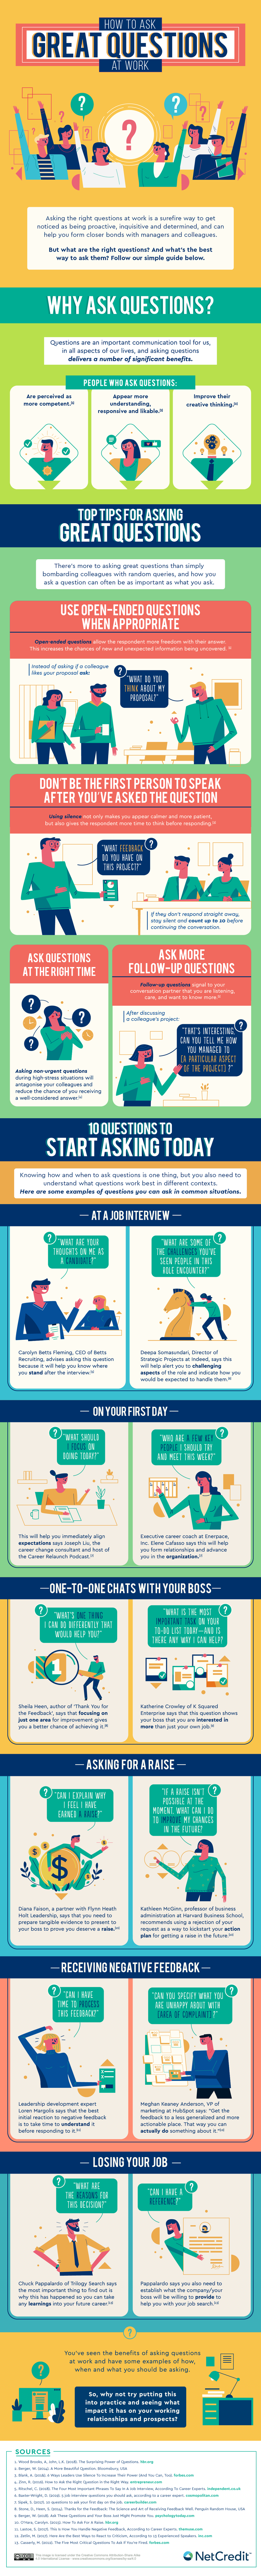 Questions you need to start asking infographic